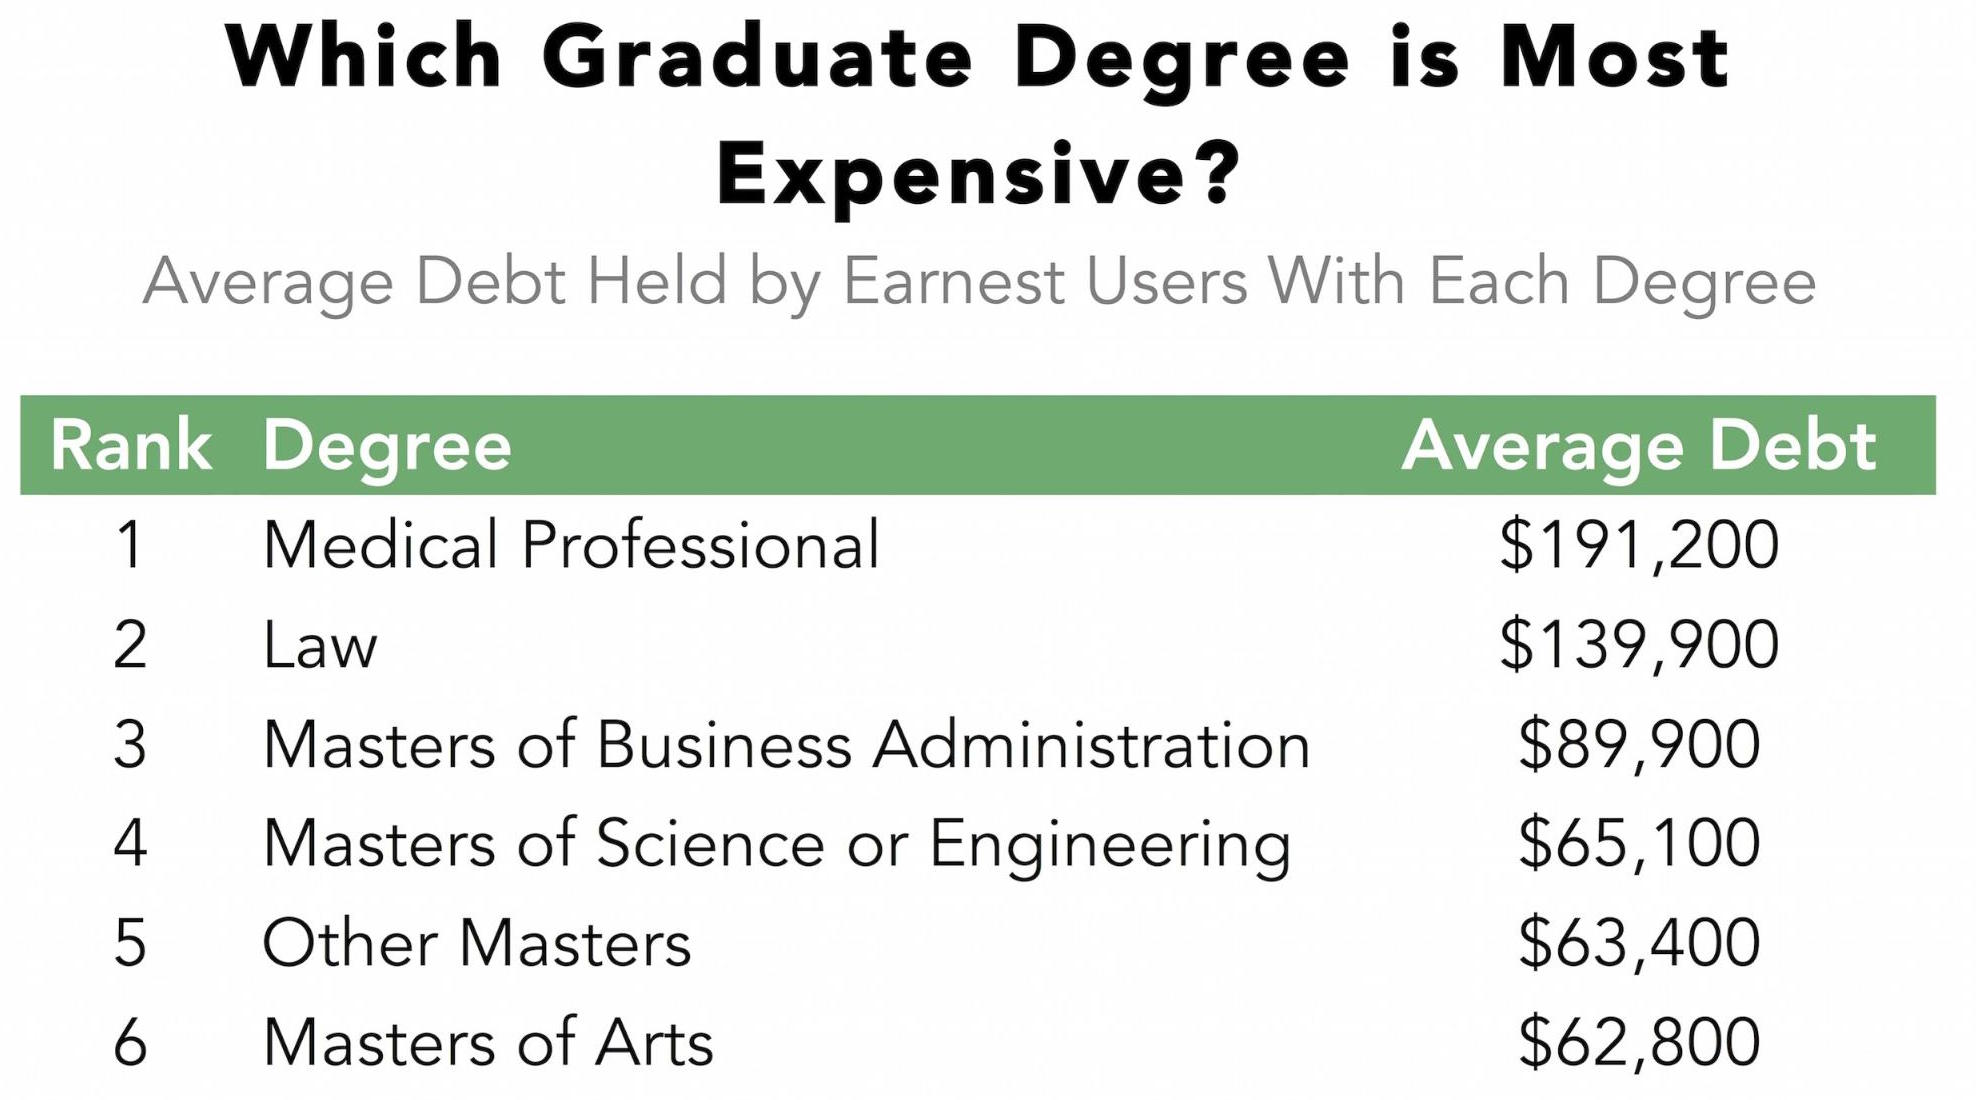 which graduate degree gets you out of debt the fastest zero hedge average student loan debt which comprises debt accumulated in college and graduate school is reported for each degree type below